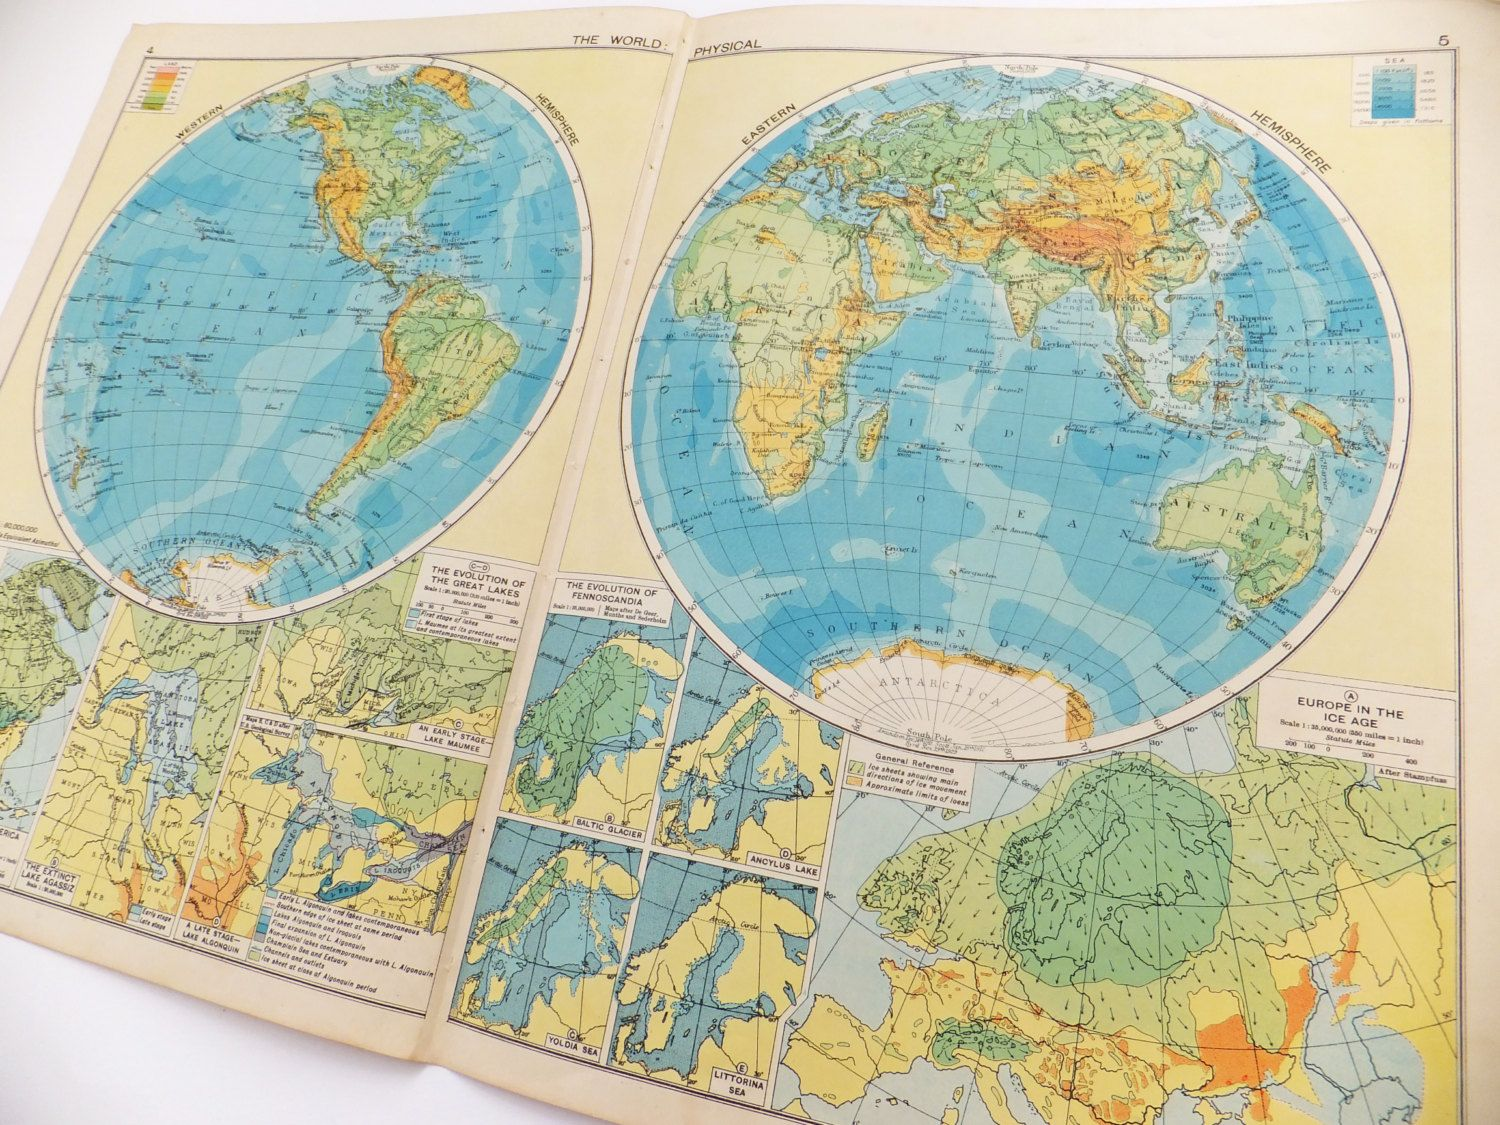 Vintage world map poster very large map of the world vintage map vintage world map poster very large map of the world vintage map 1948 gumiabroncs Choice Image